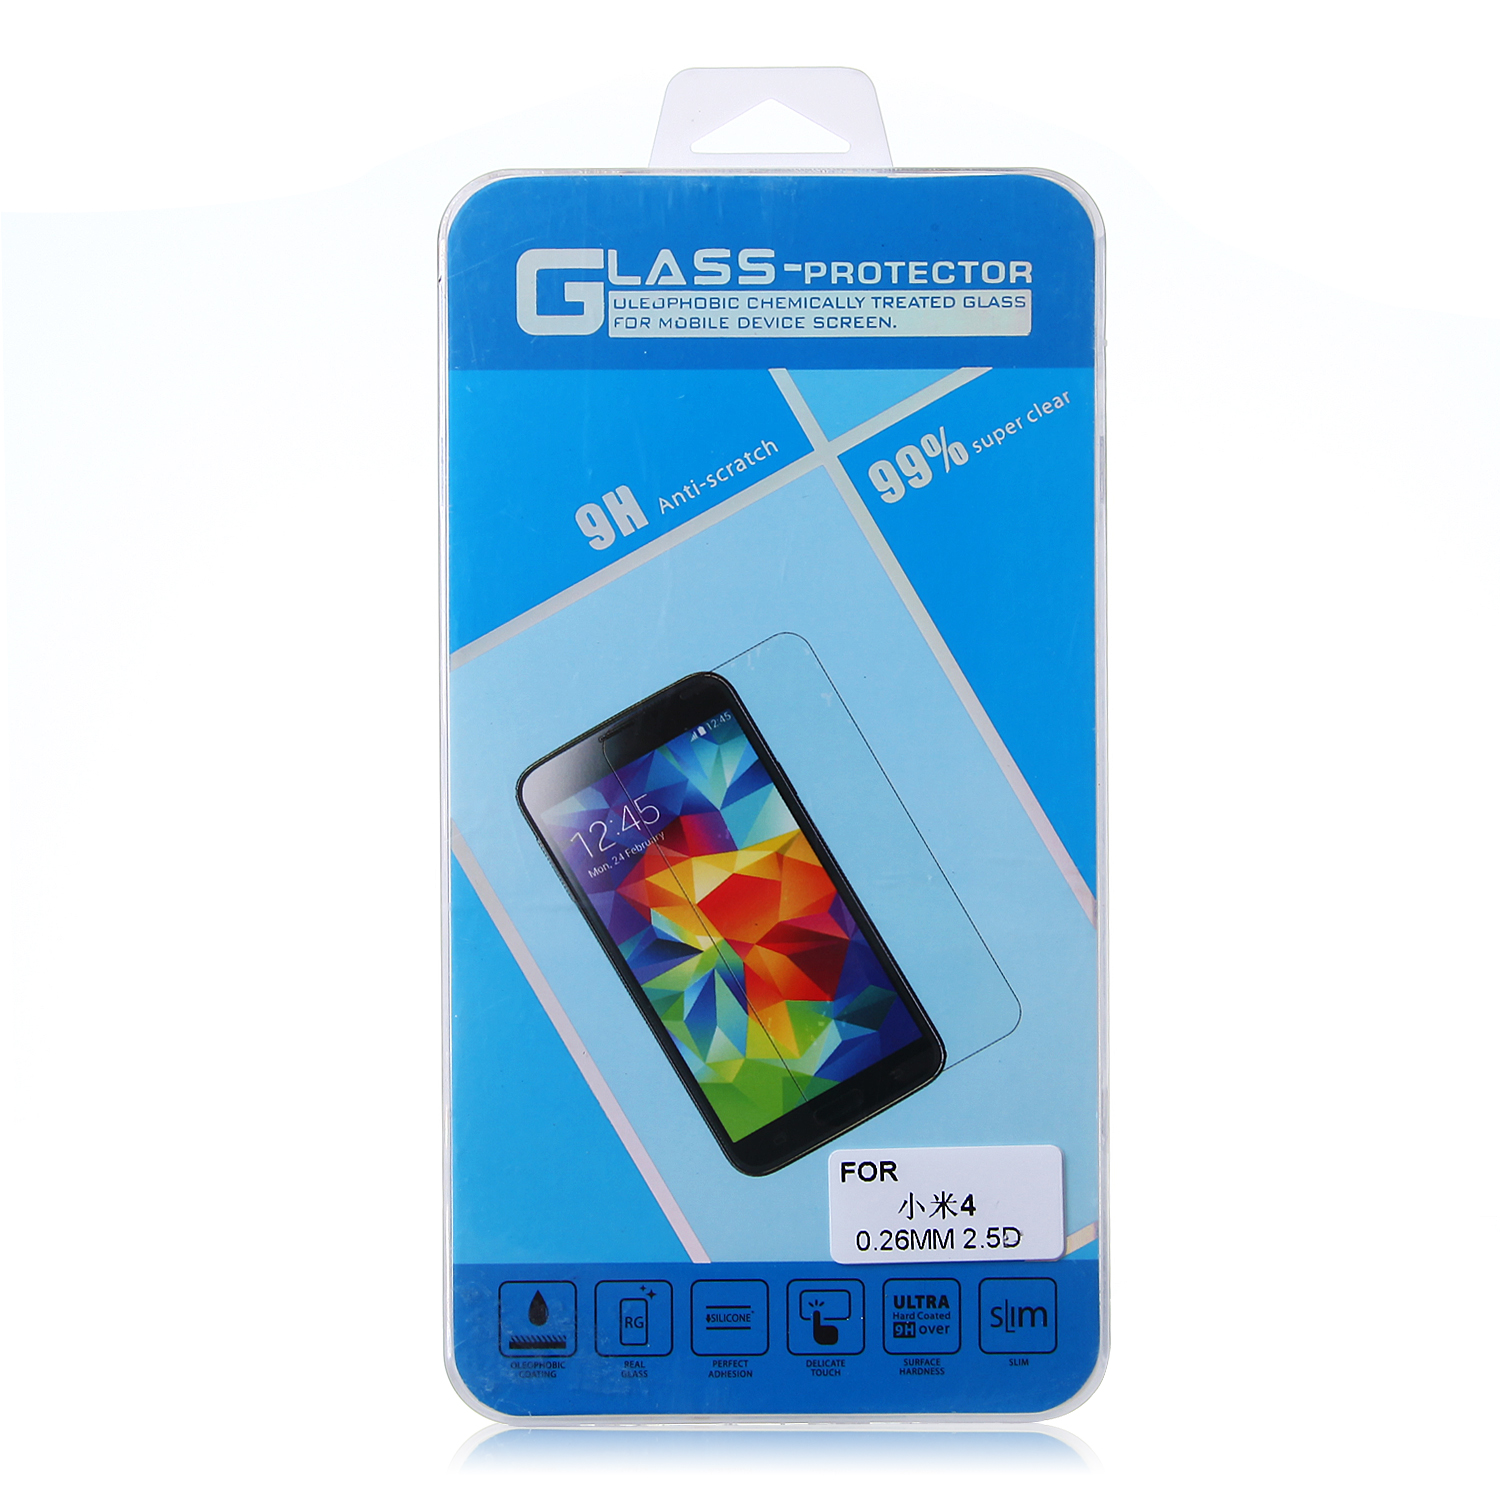 0.26MM Thickness 2.5D Tempered Glass Screen Protector Film for XIAOMI MI4 Smartphone